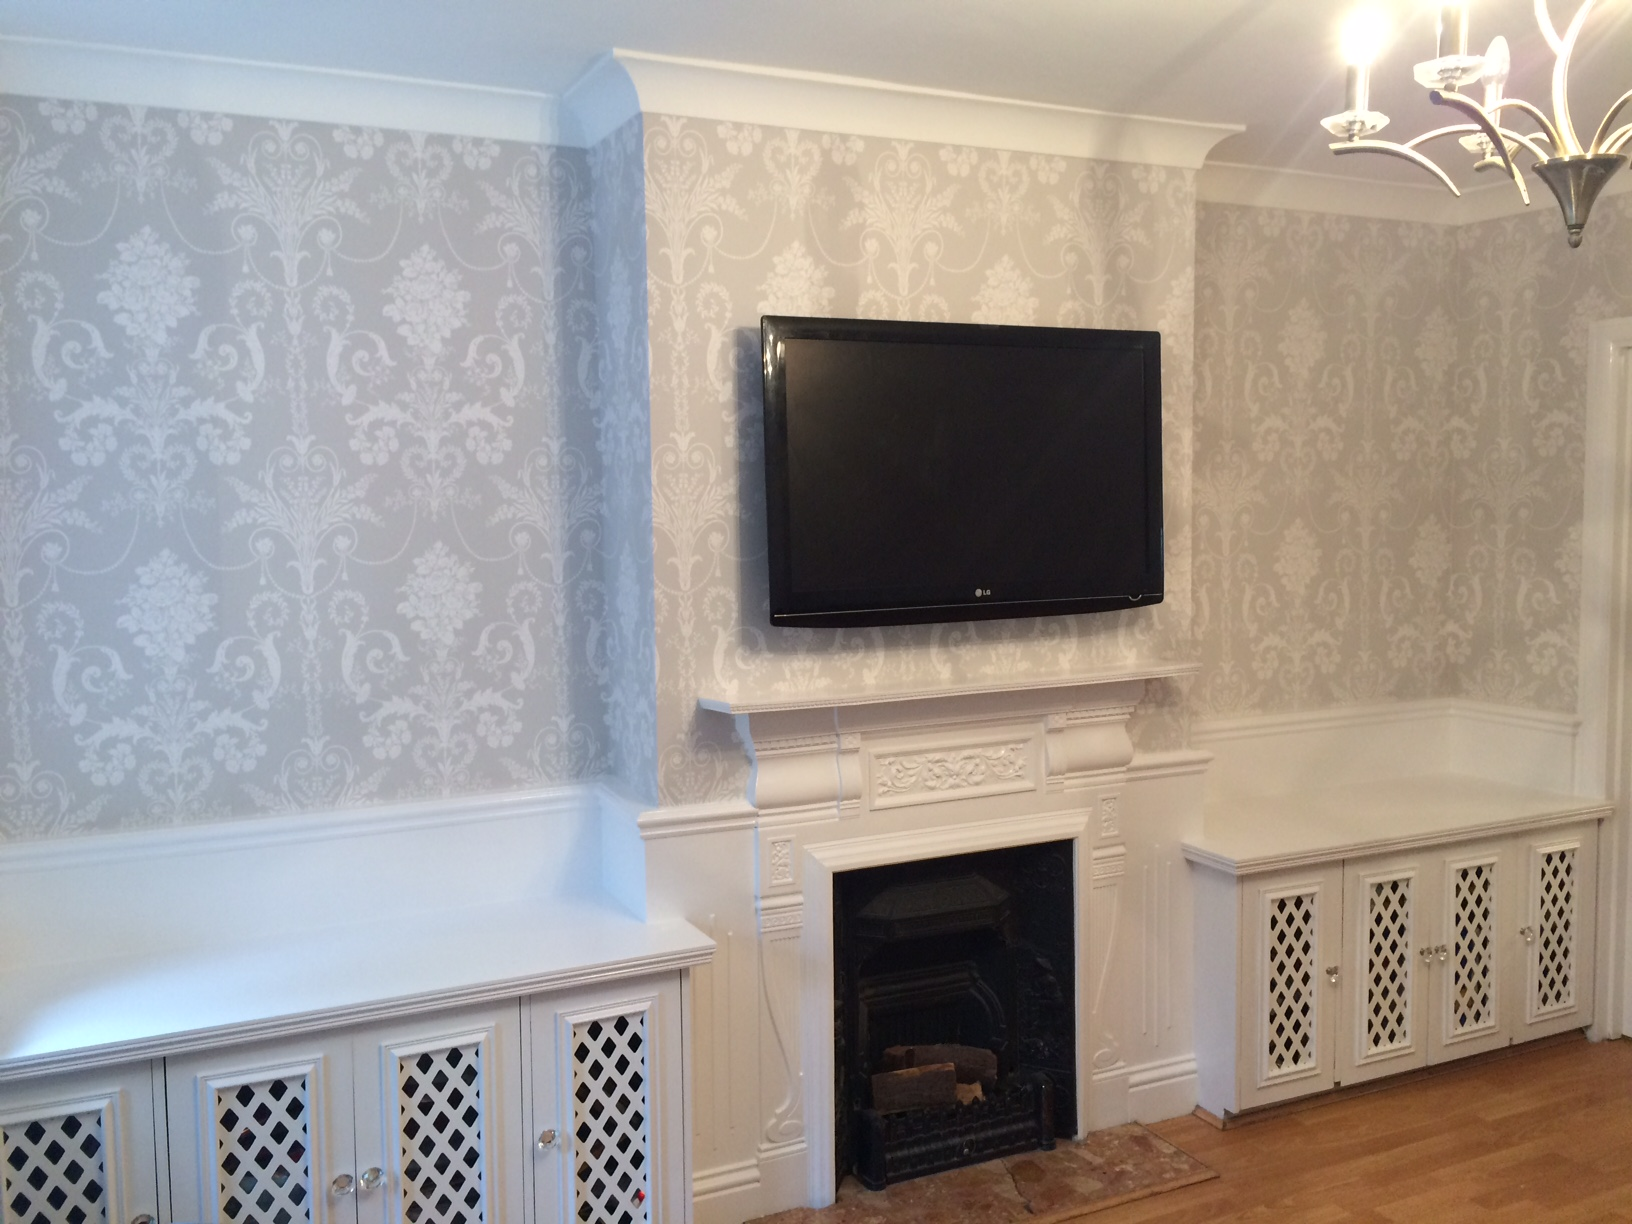 wallpapering Bickley